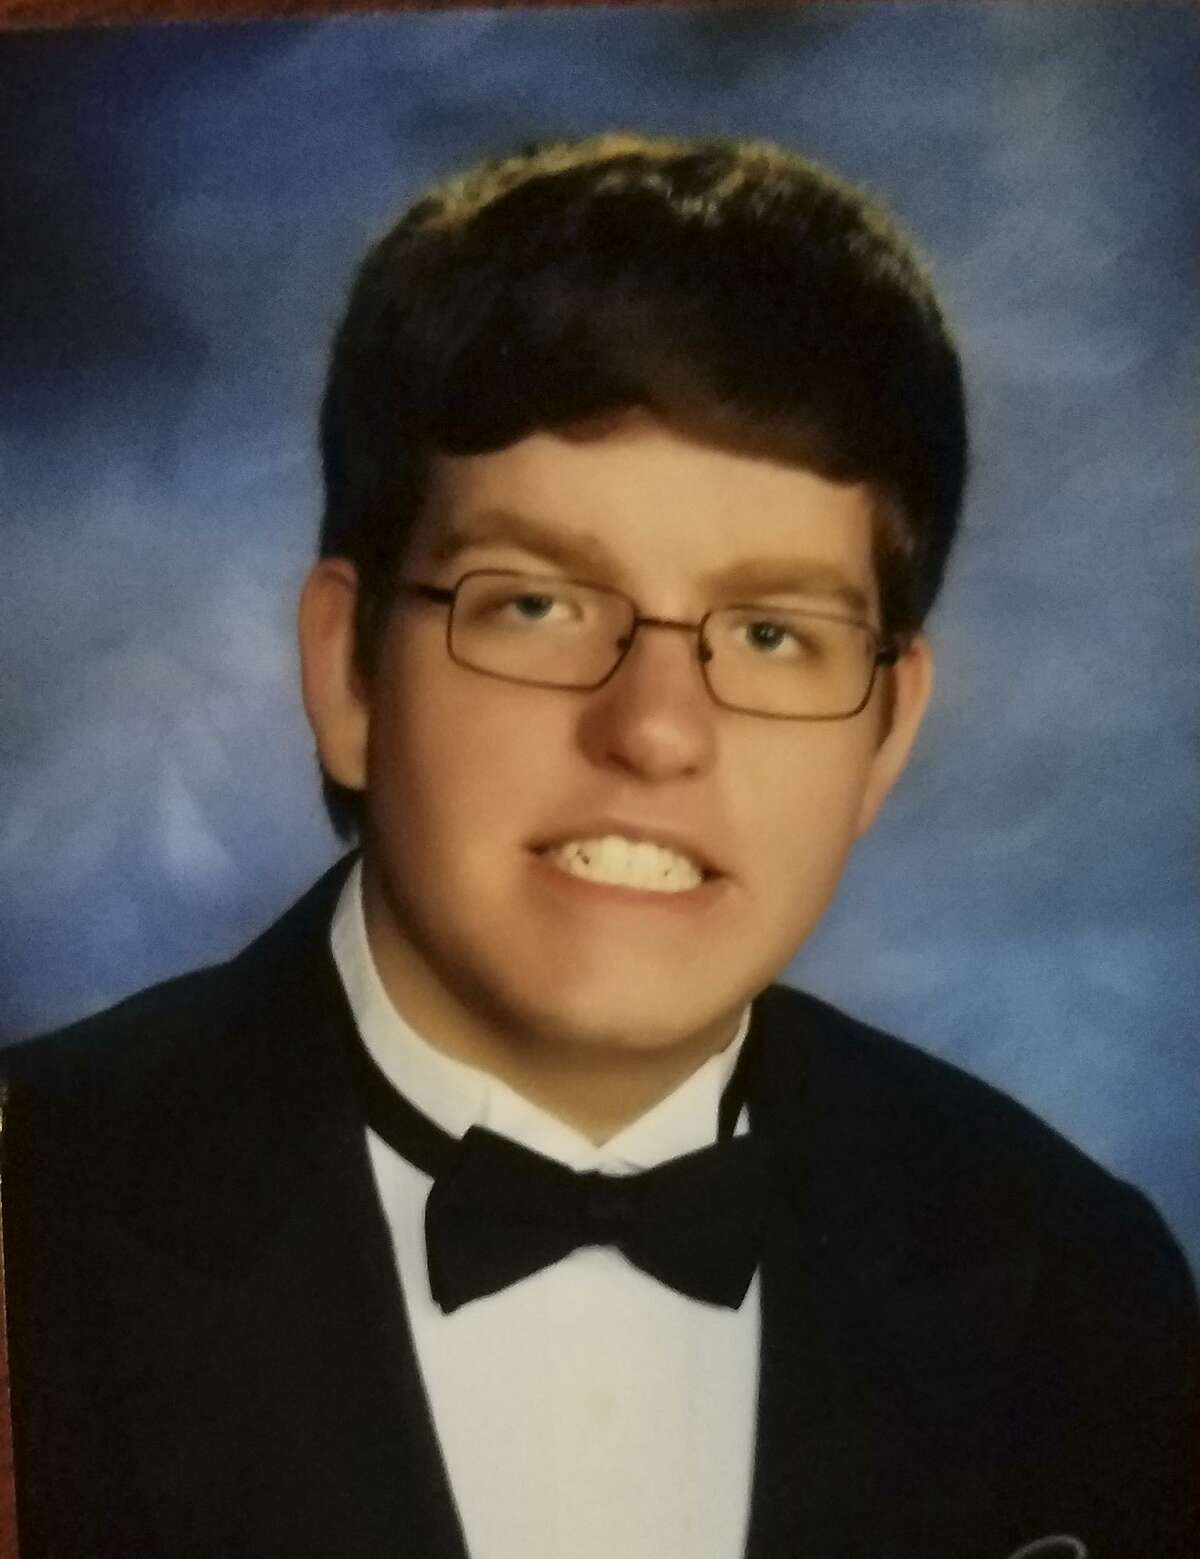 Andrew Henckel, 19, like his nephew, has autism, and the two reportedly had gotten along well.